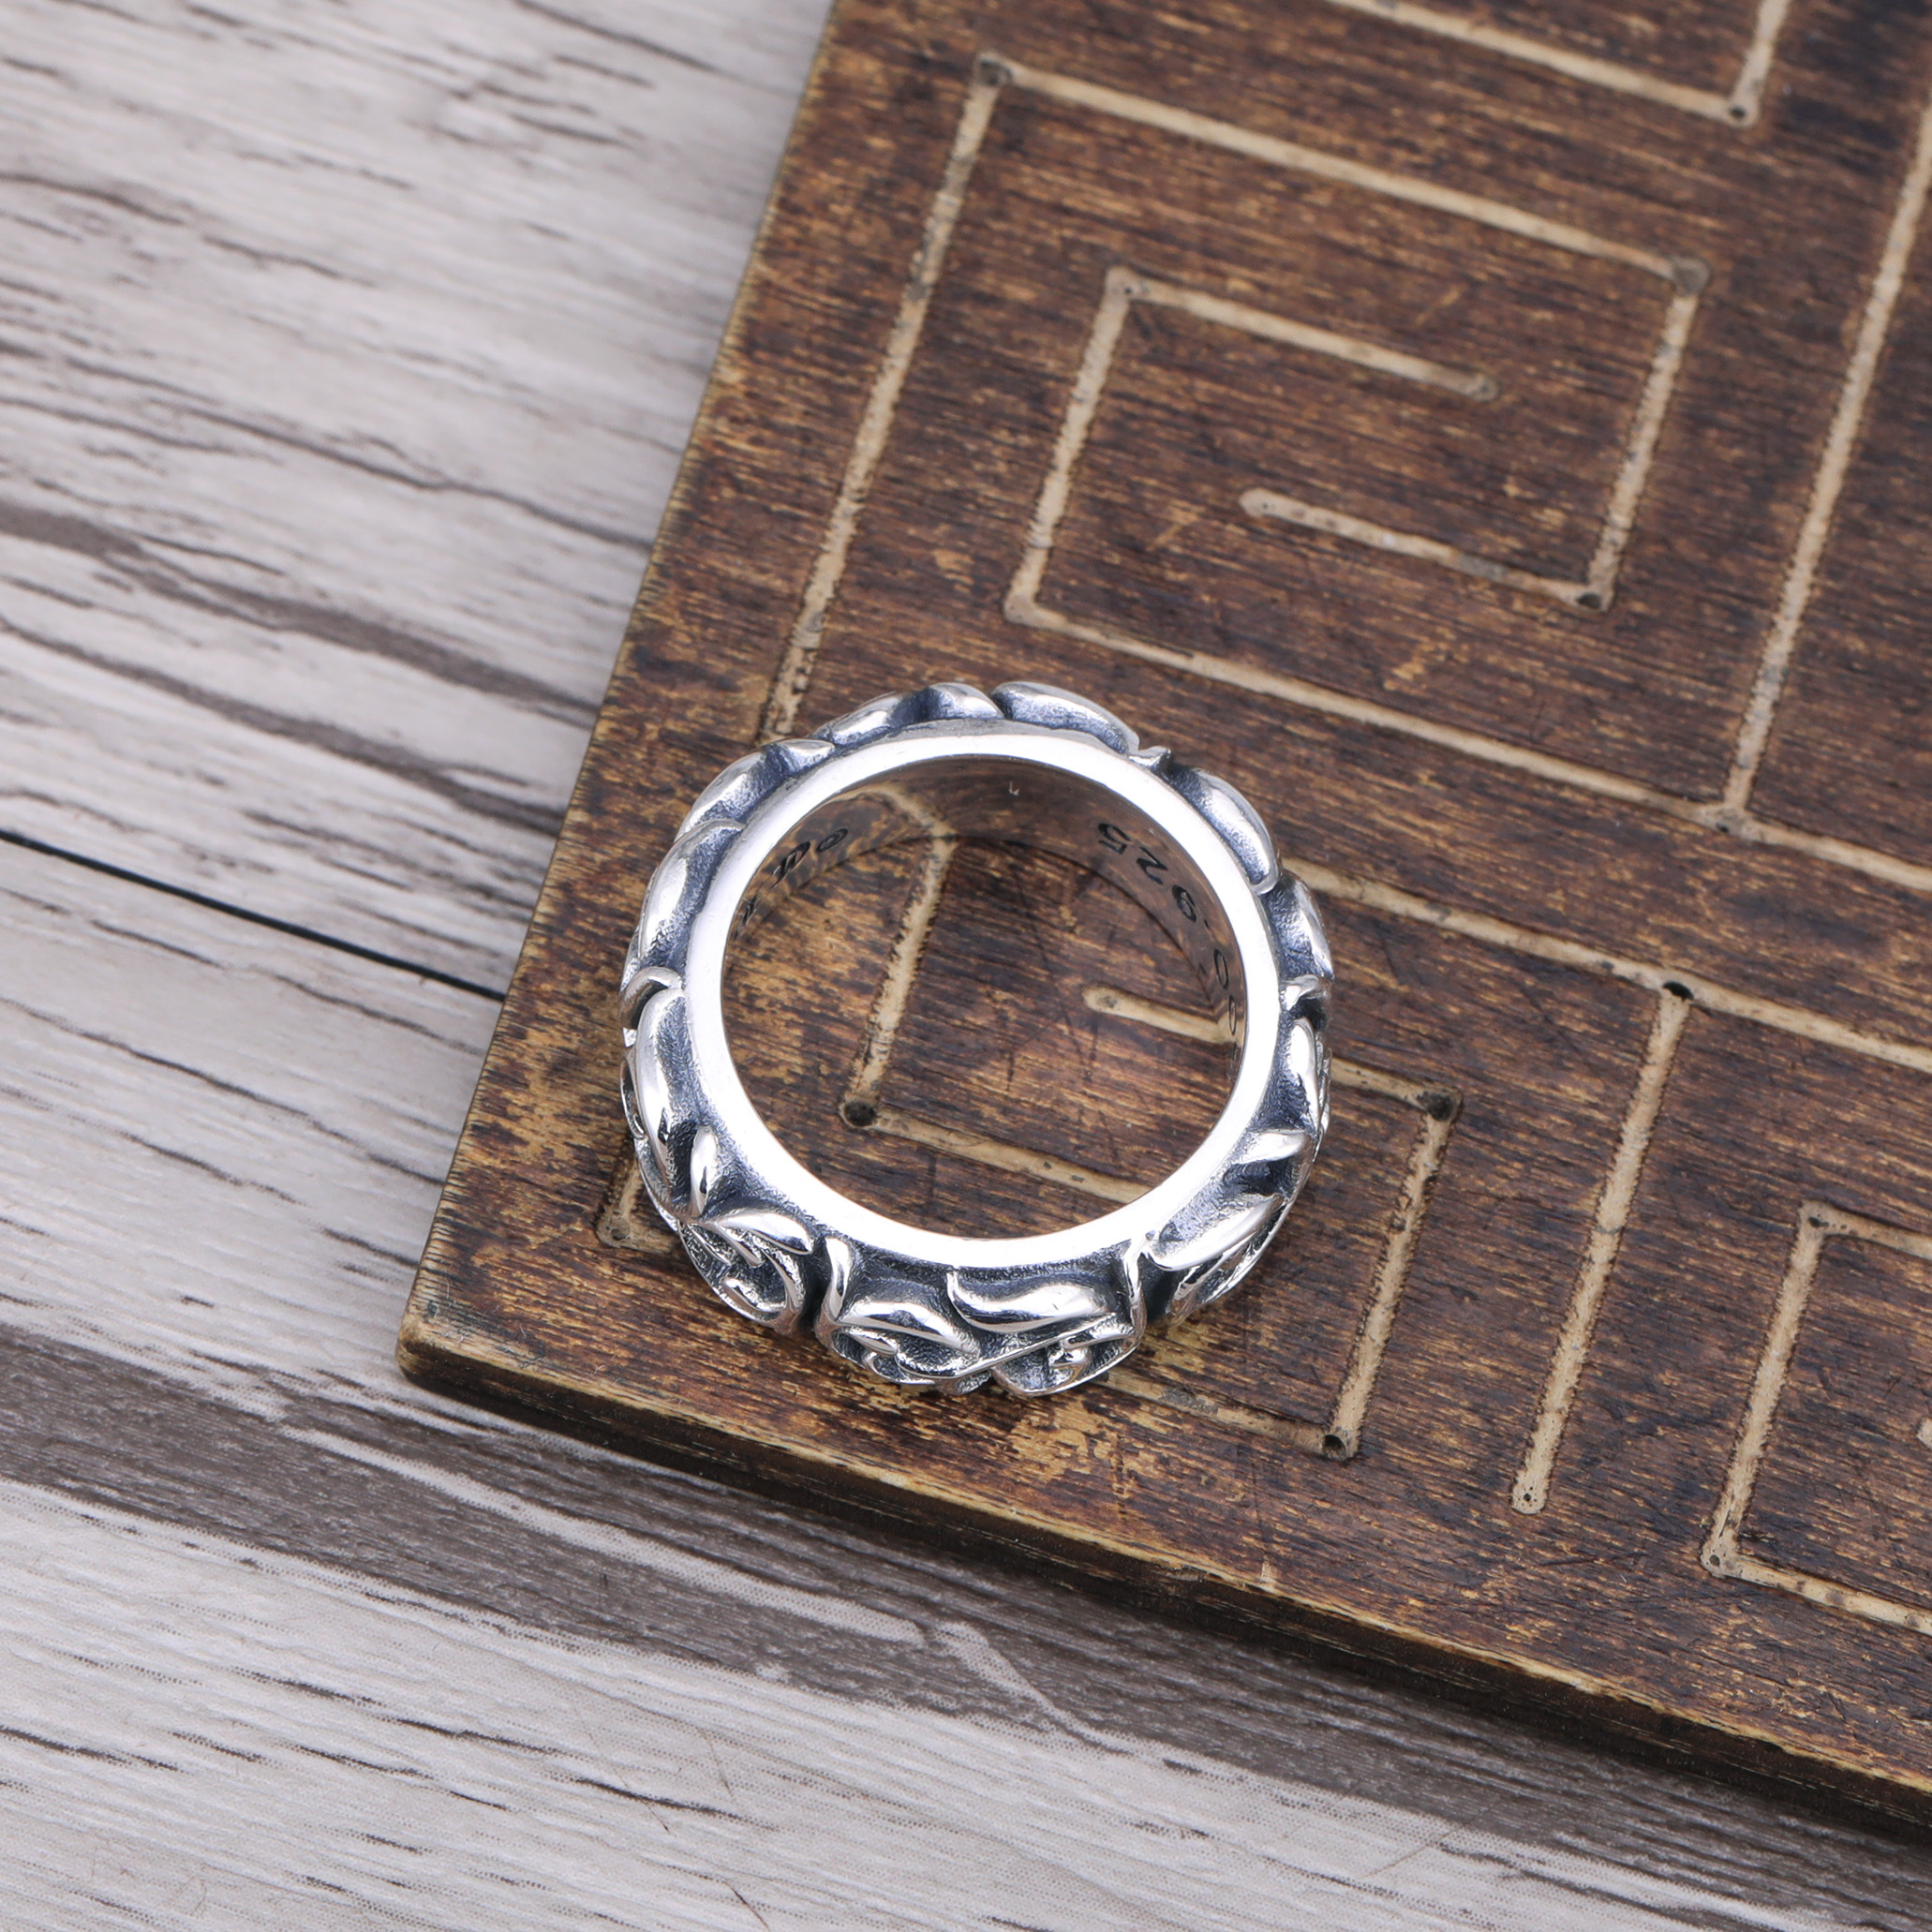 Official website Jinliufu 925 sterling silver jewelry to create a vintage rattan ring